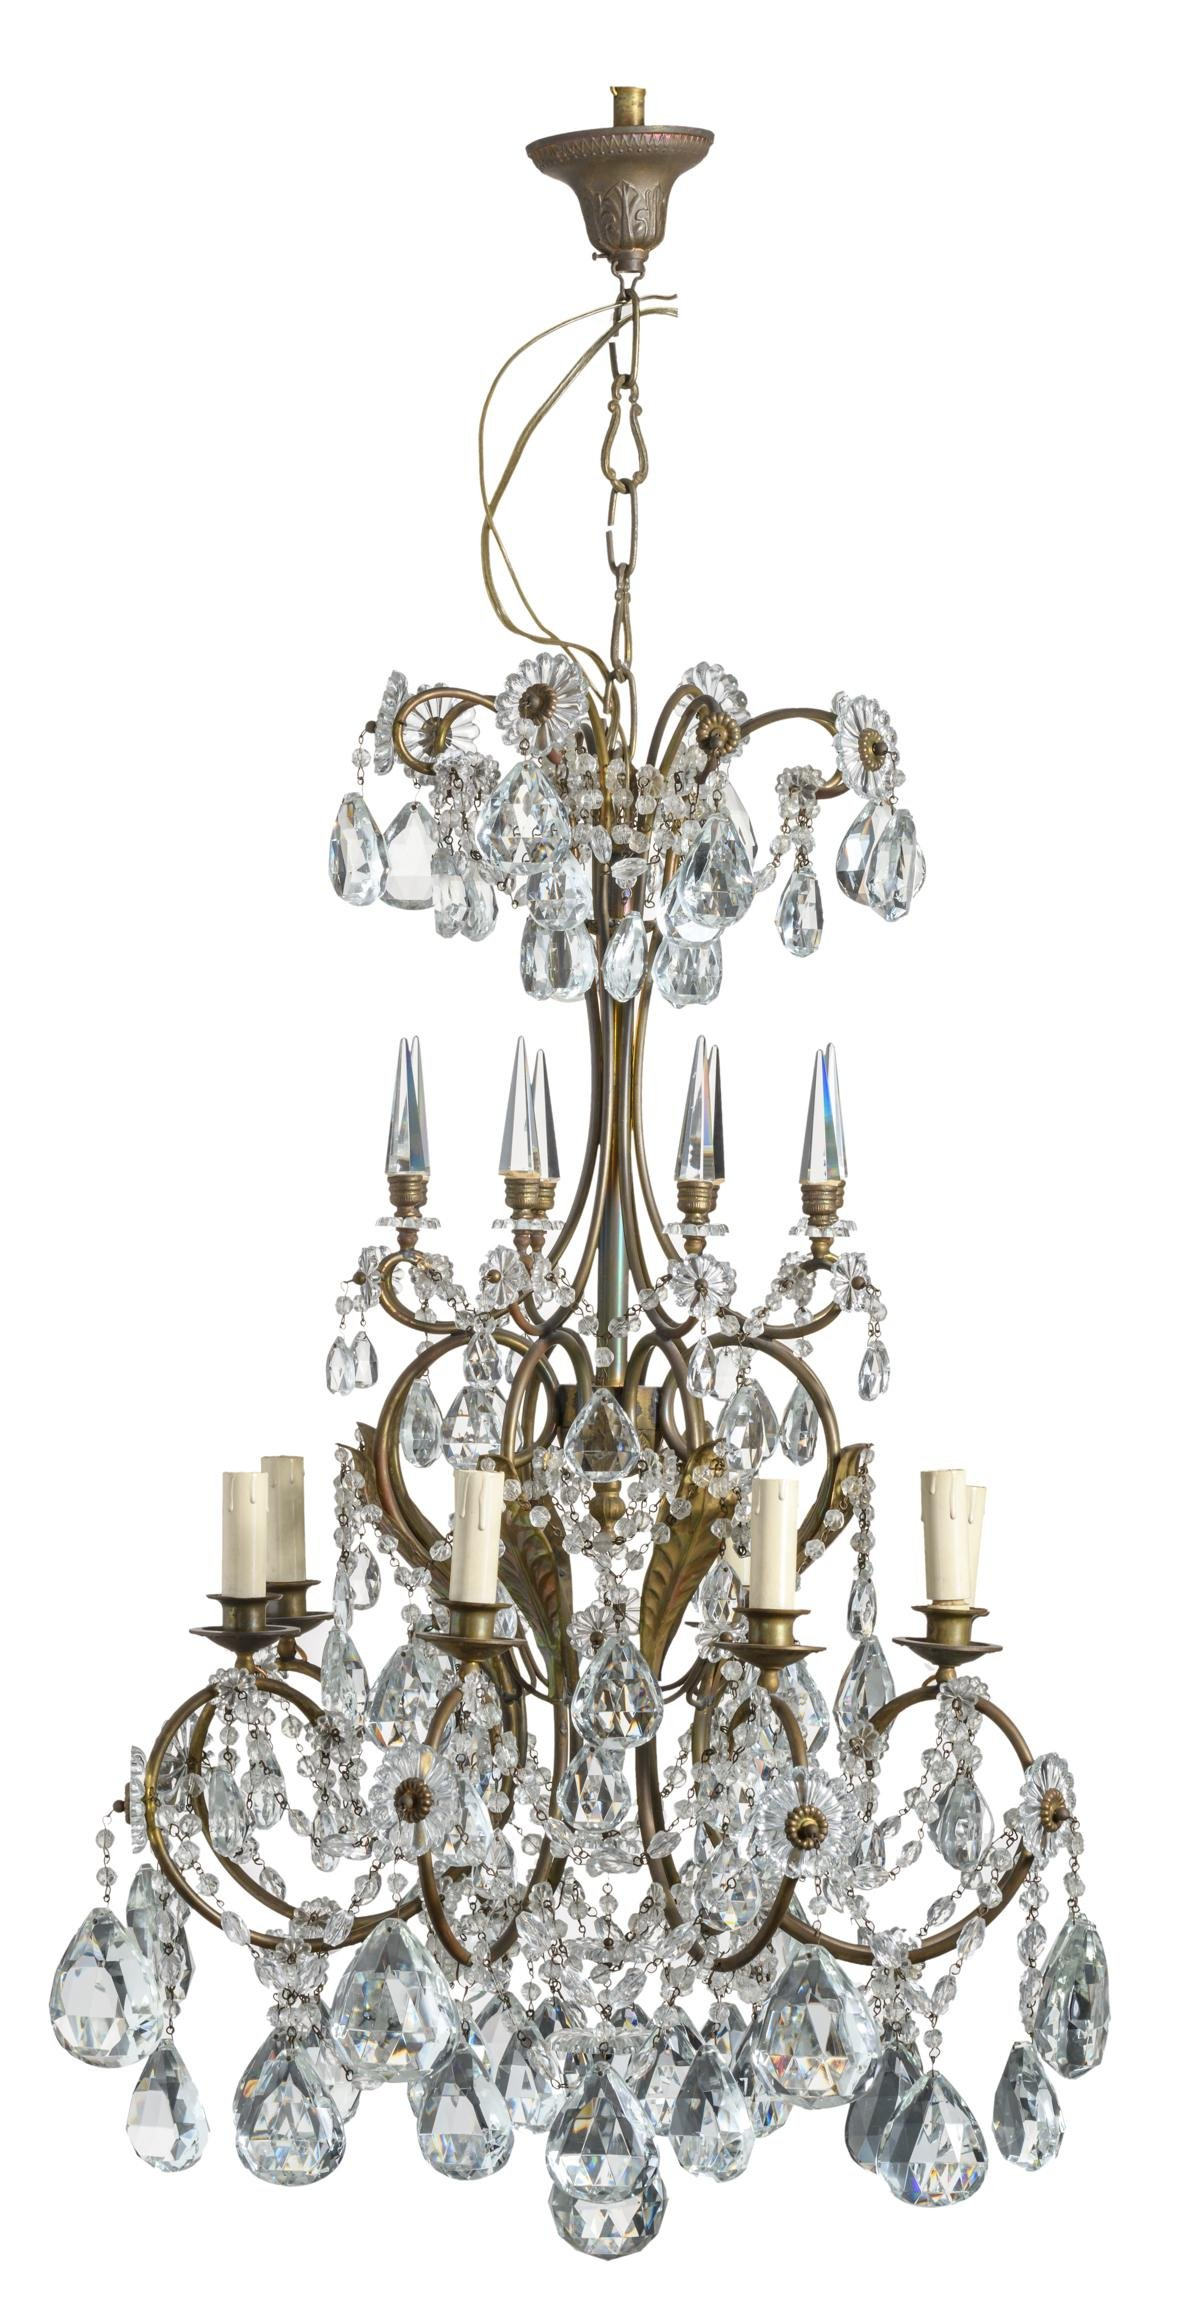 A floral decorated gilt brass chandelier with cut